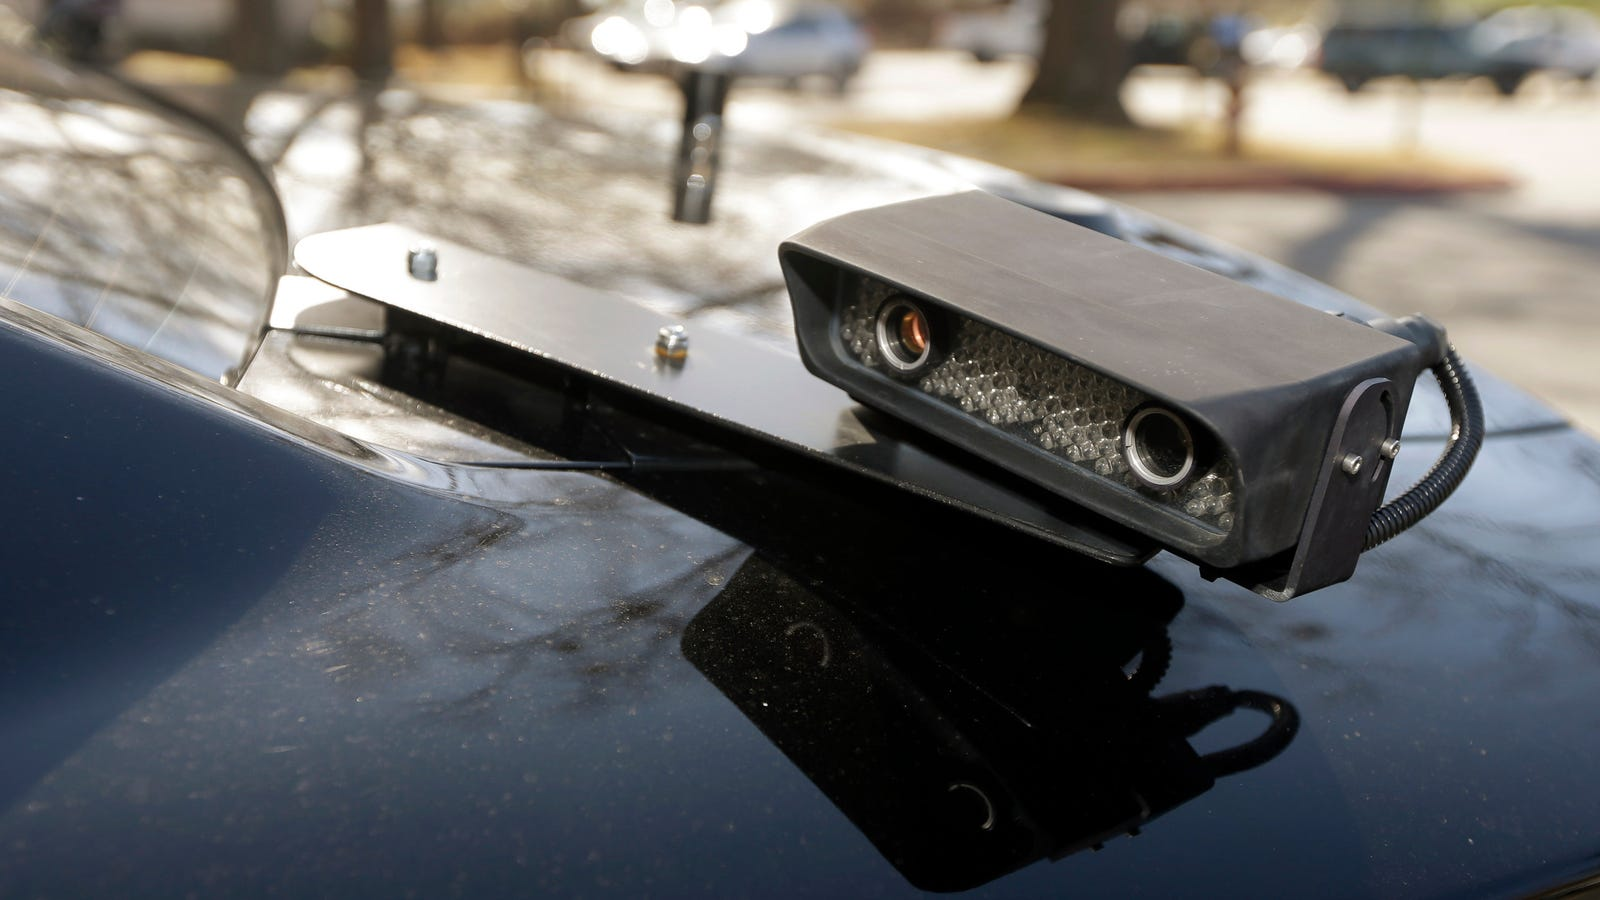 The Company That Makes the U.S. Border's License Plate Scanners Has Been Hacked